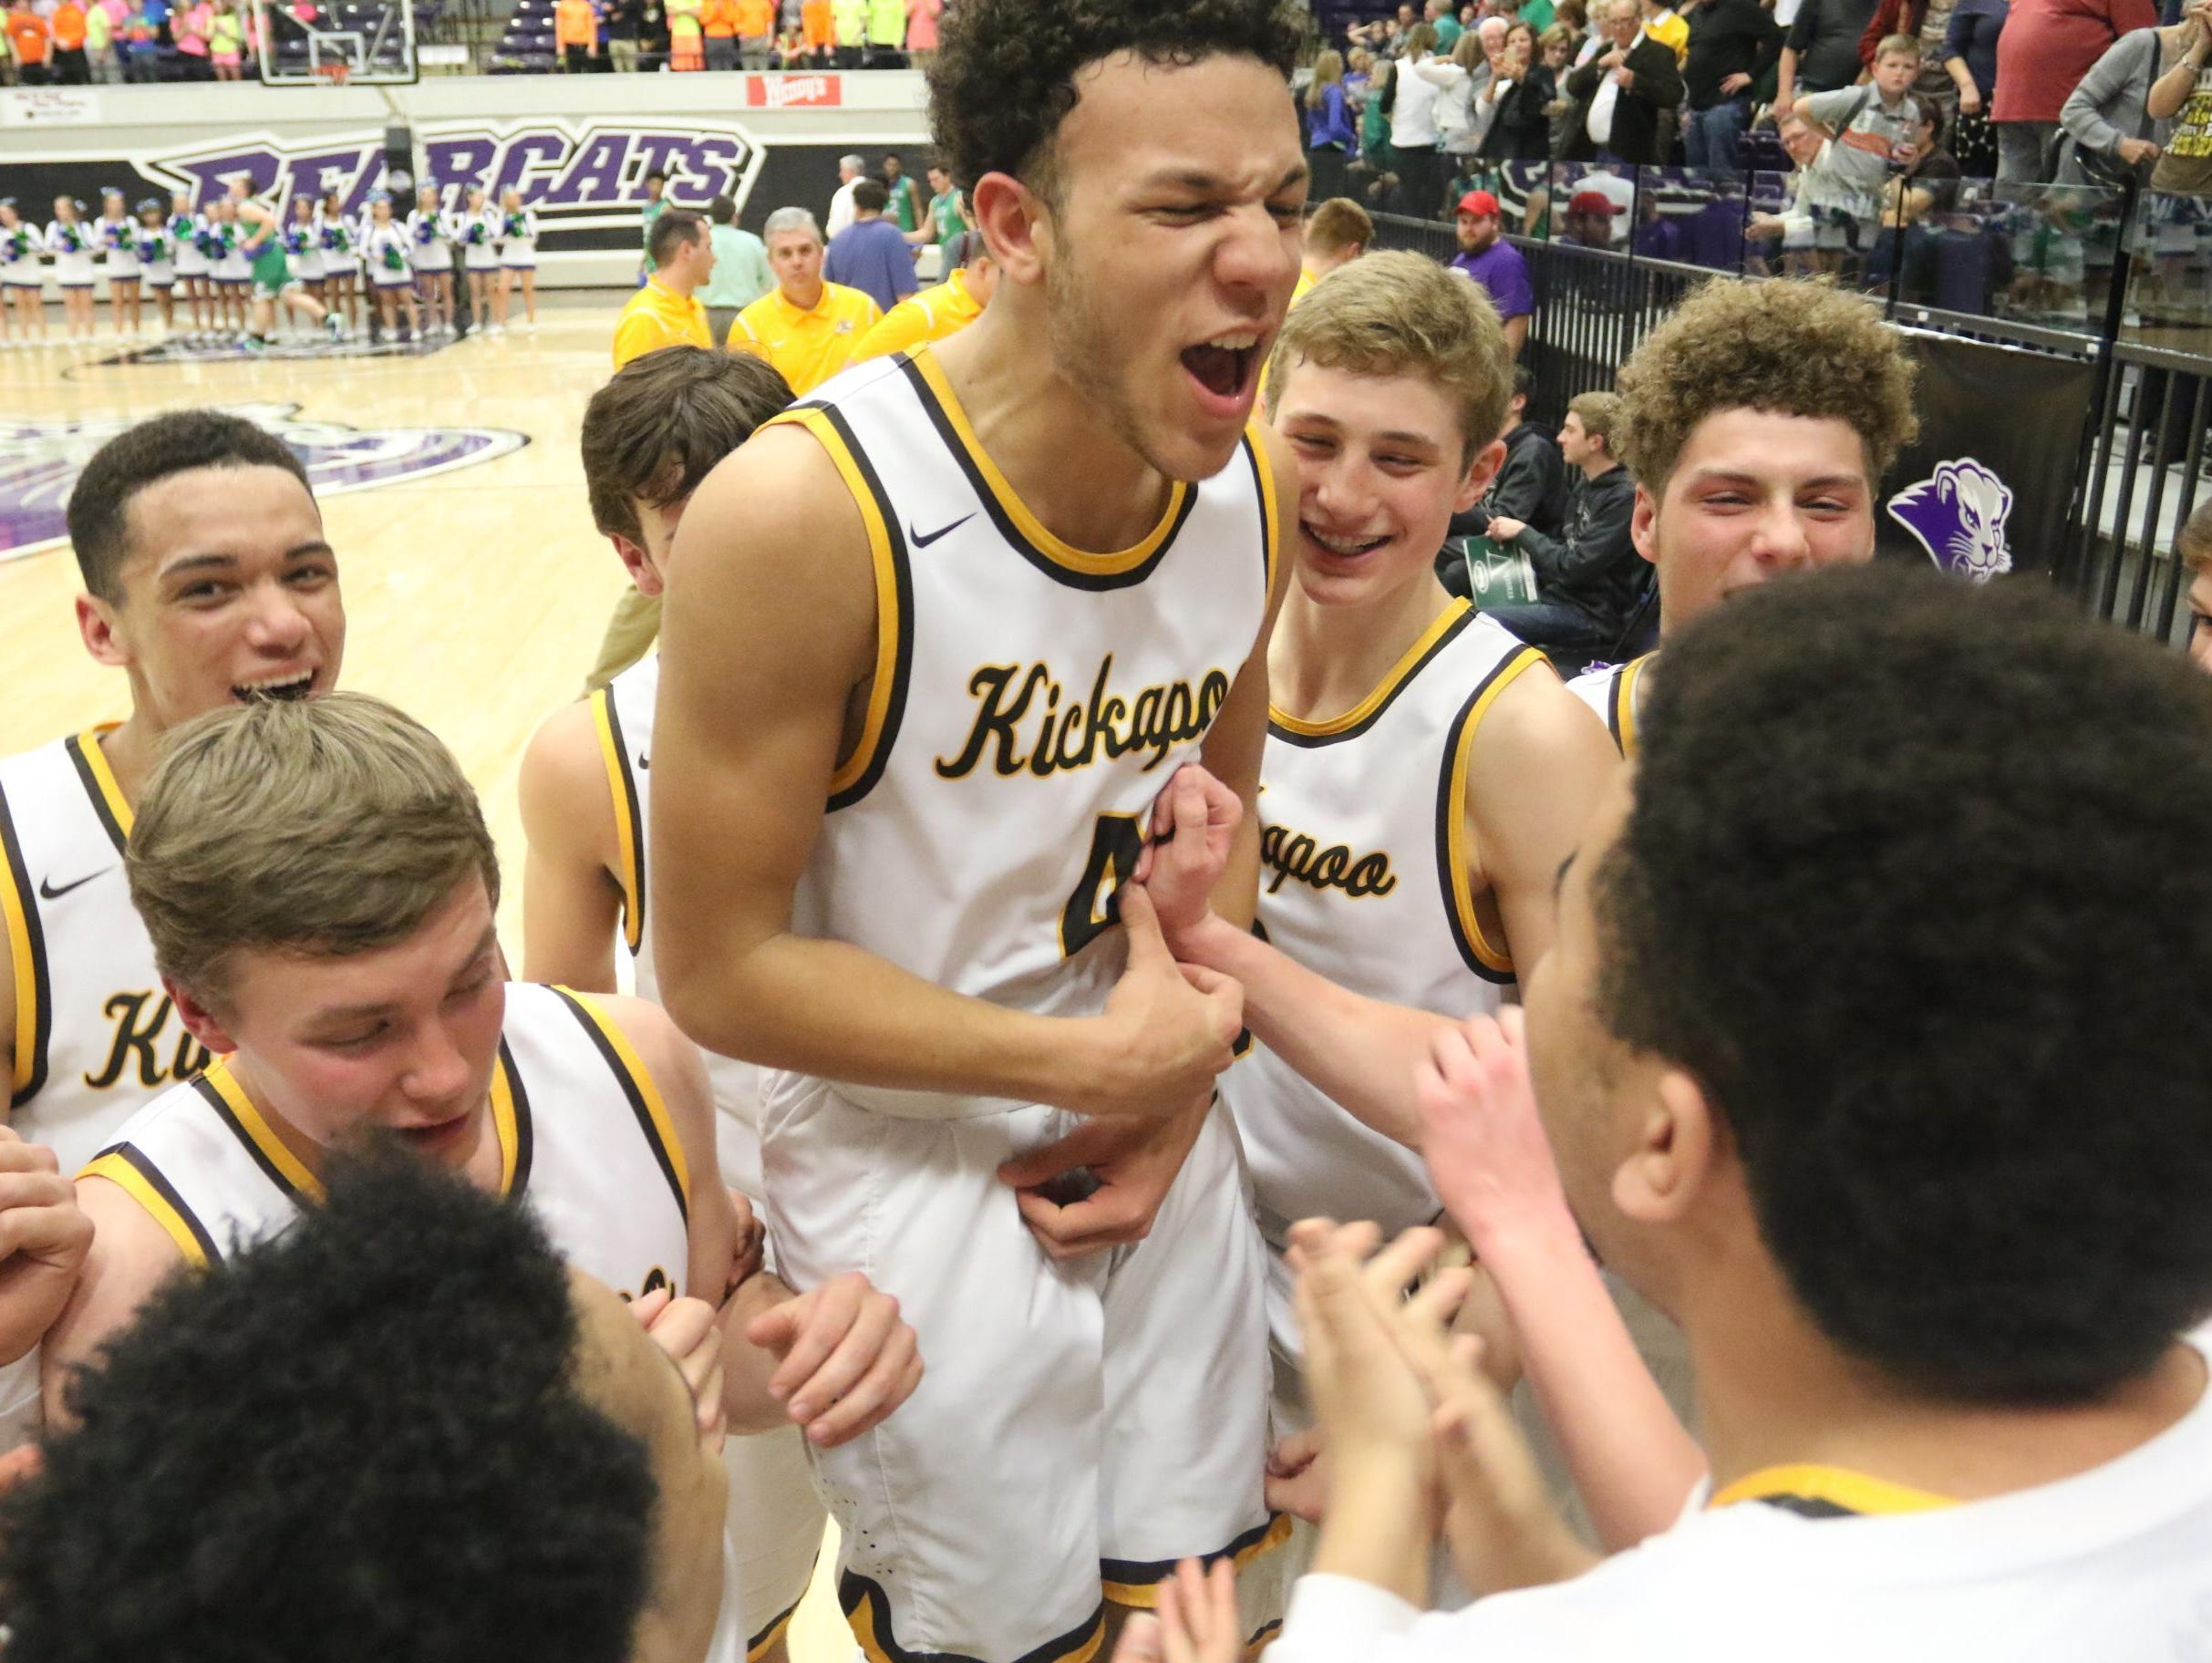 The Kickapoo boys basketball team placed second to Chaminade in the 2015 Class 5 basketball playoffs